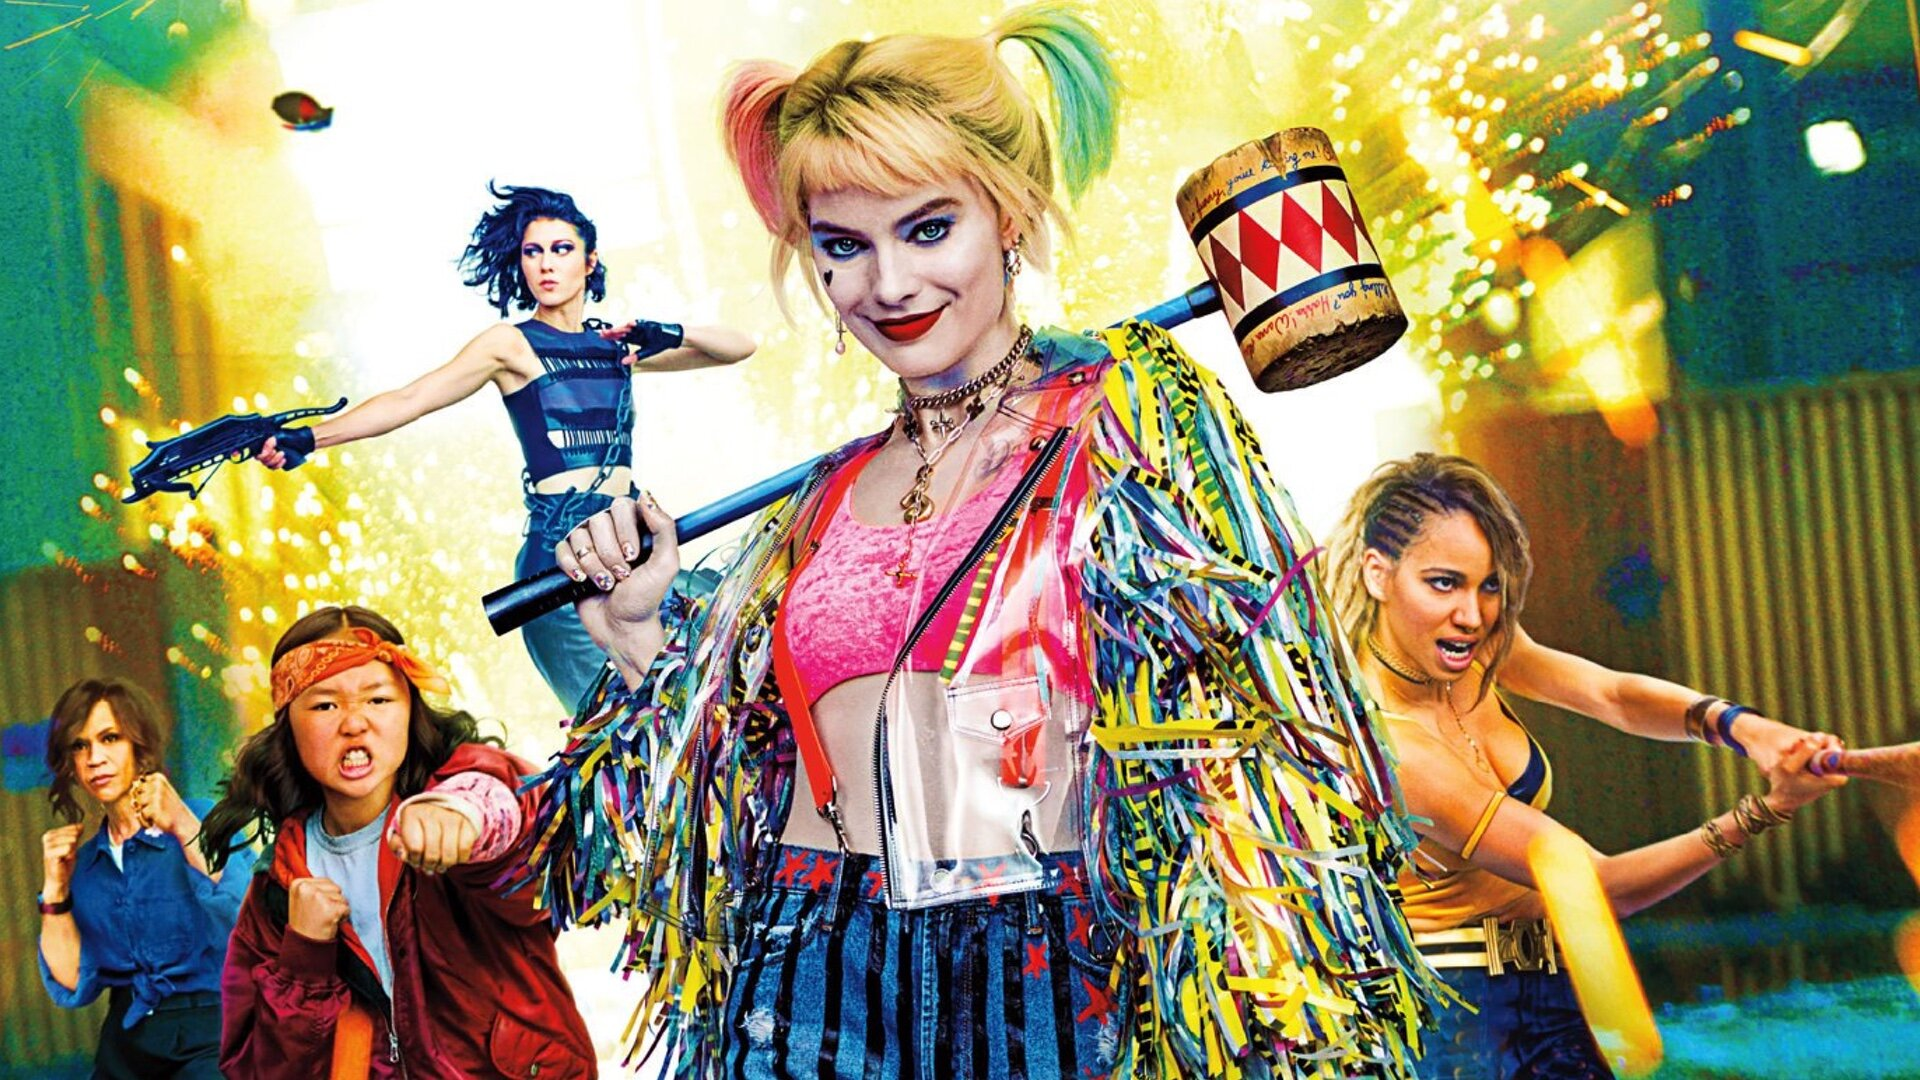 BIRDS OF PREY Is Described as PULP FICTION Meets RASHOMON and There Are Two New Posters